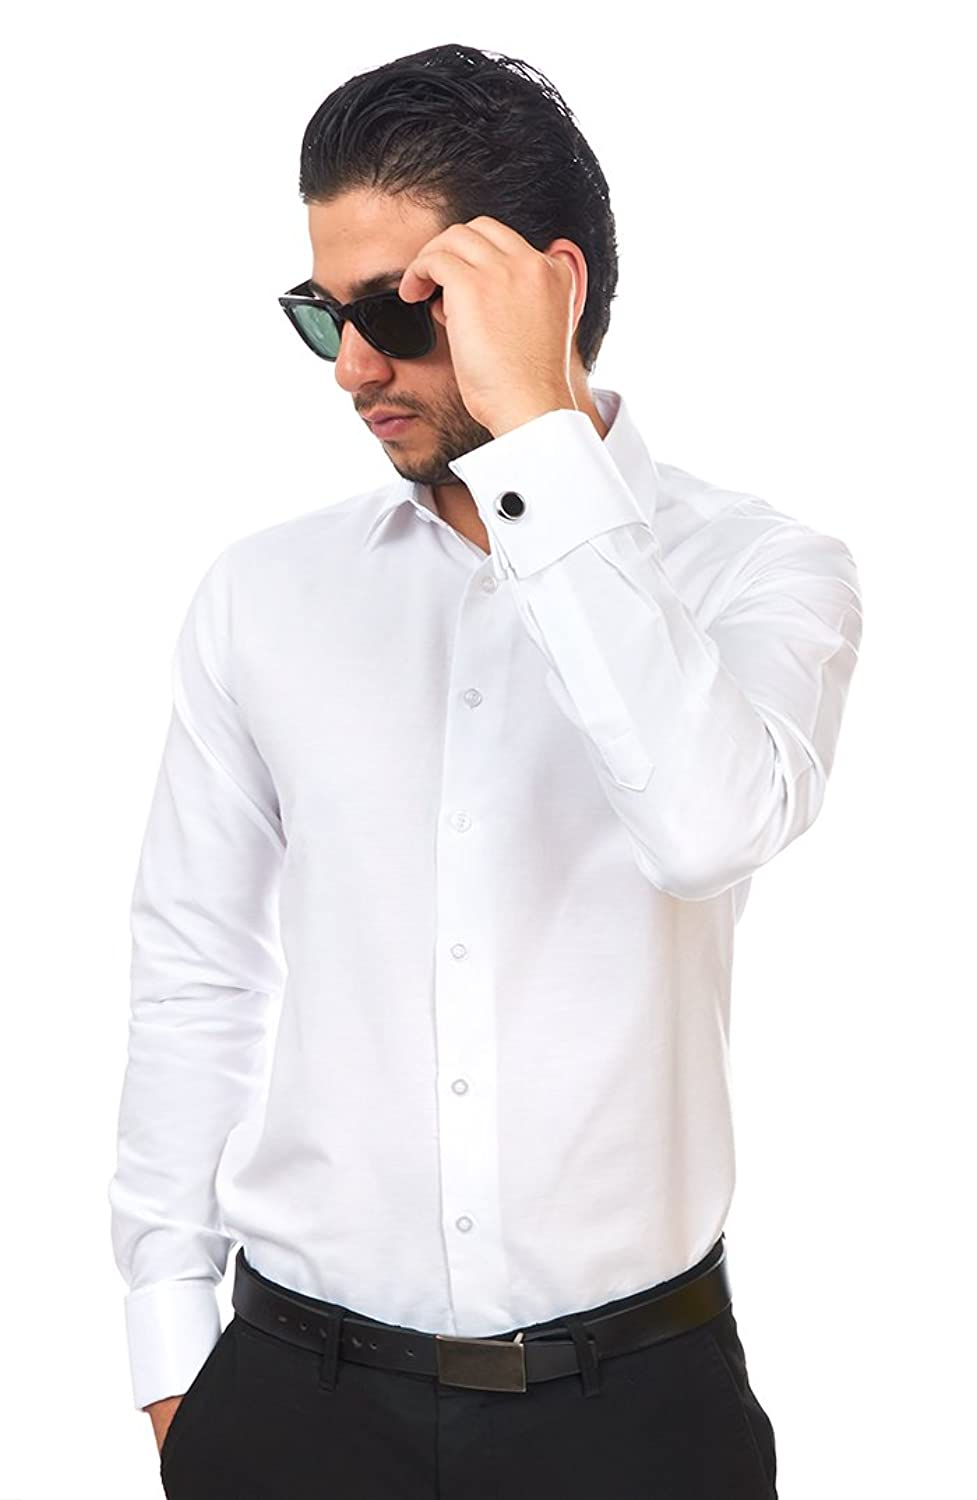 New Mens Dress Shirt White French Cuff Tailored Slim Fit Wrinkle ...